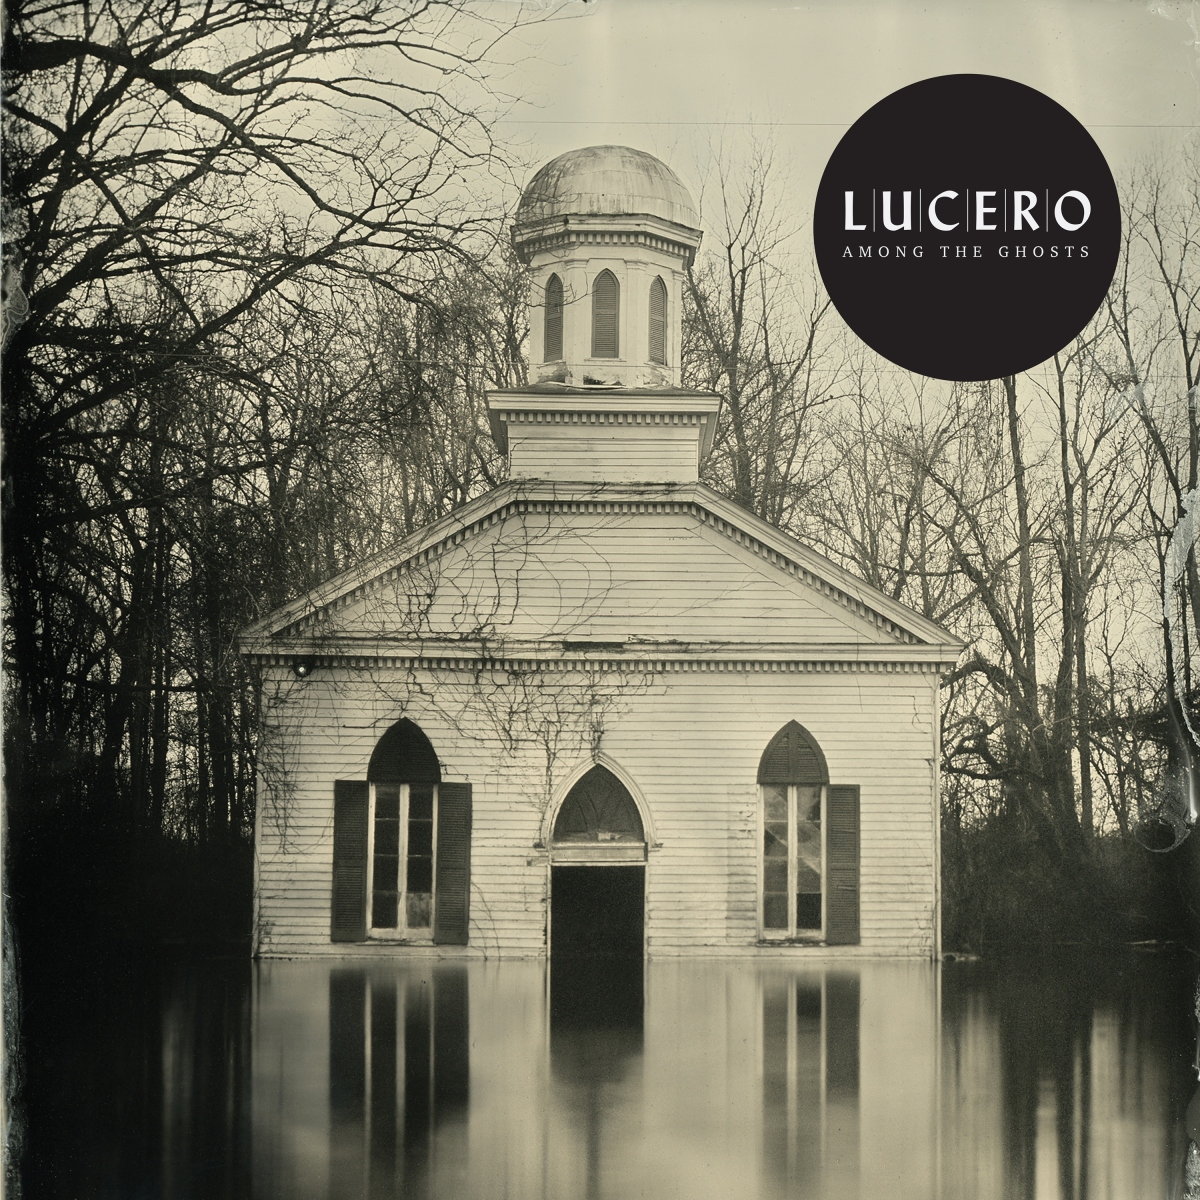 ALBUM REVIEW: Lucero – Among The Ghosts